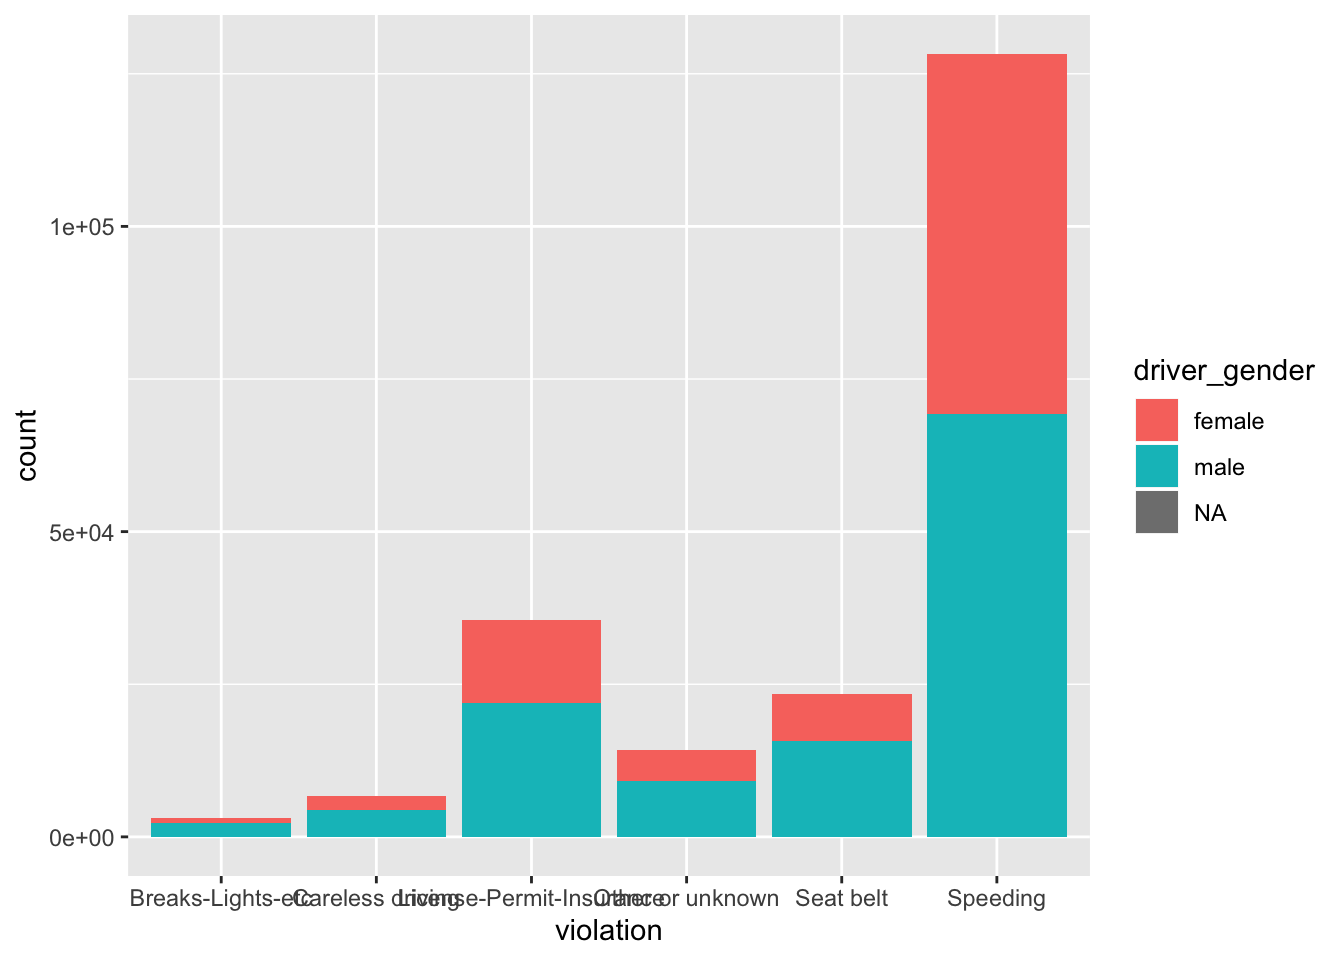 Chapter 1 Data Visualization with ggplot2 | Data Visualization with R